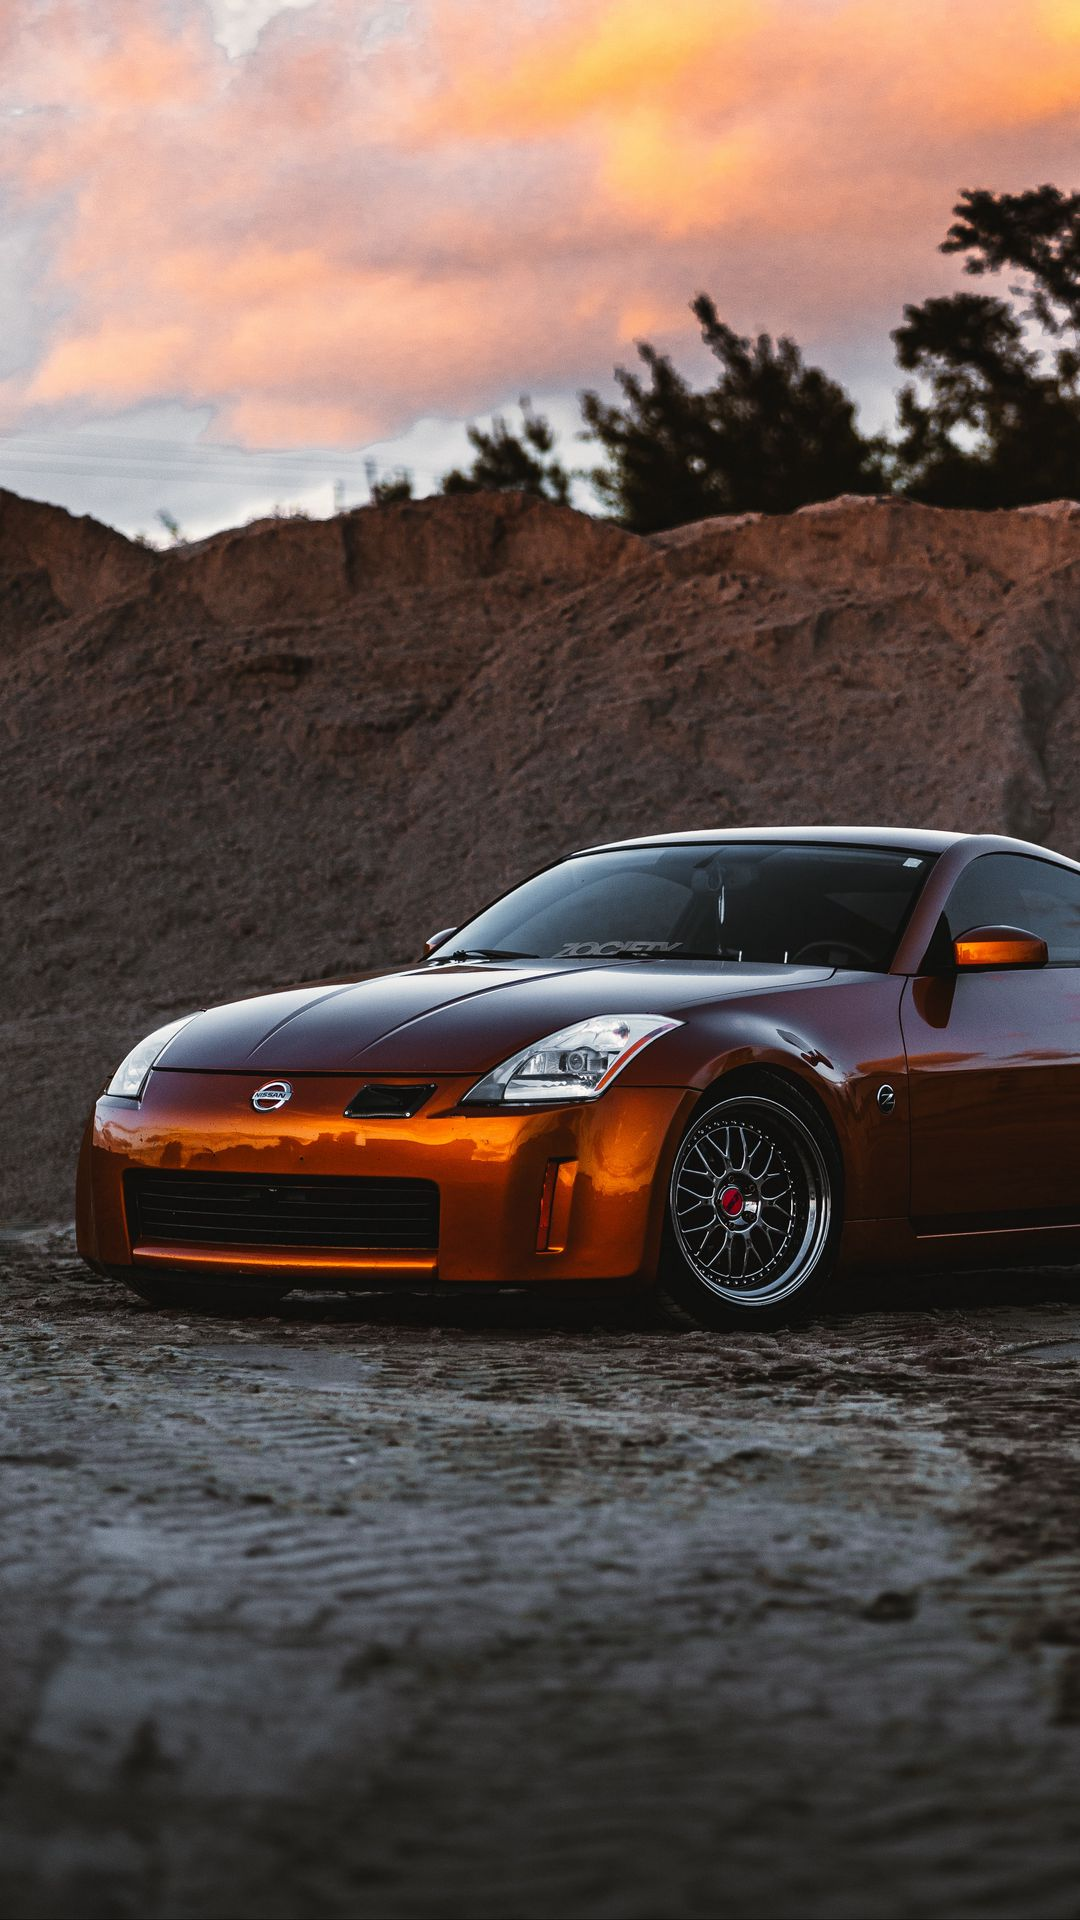 Nissan 350Z HD Wallpapers Free Download for Phone & iOS